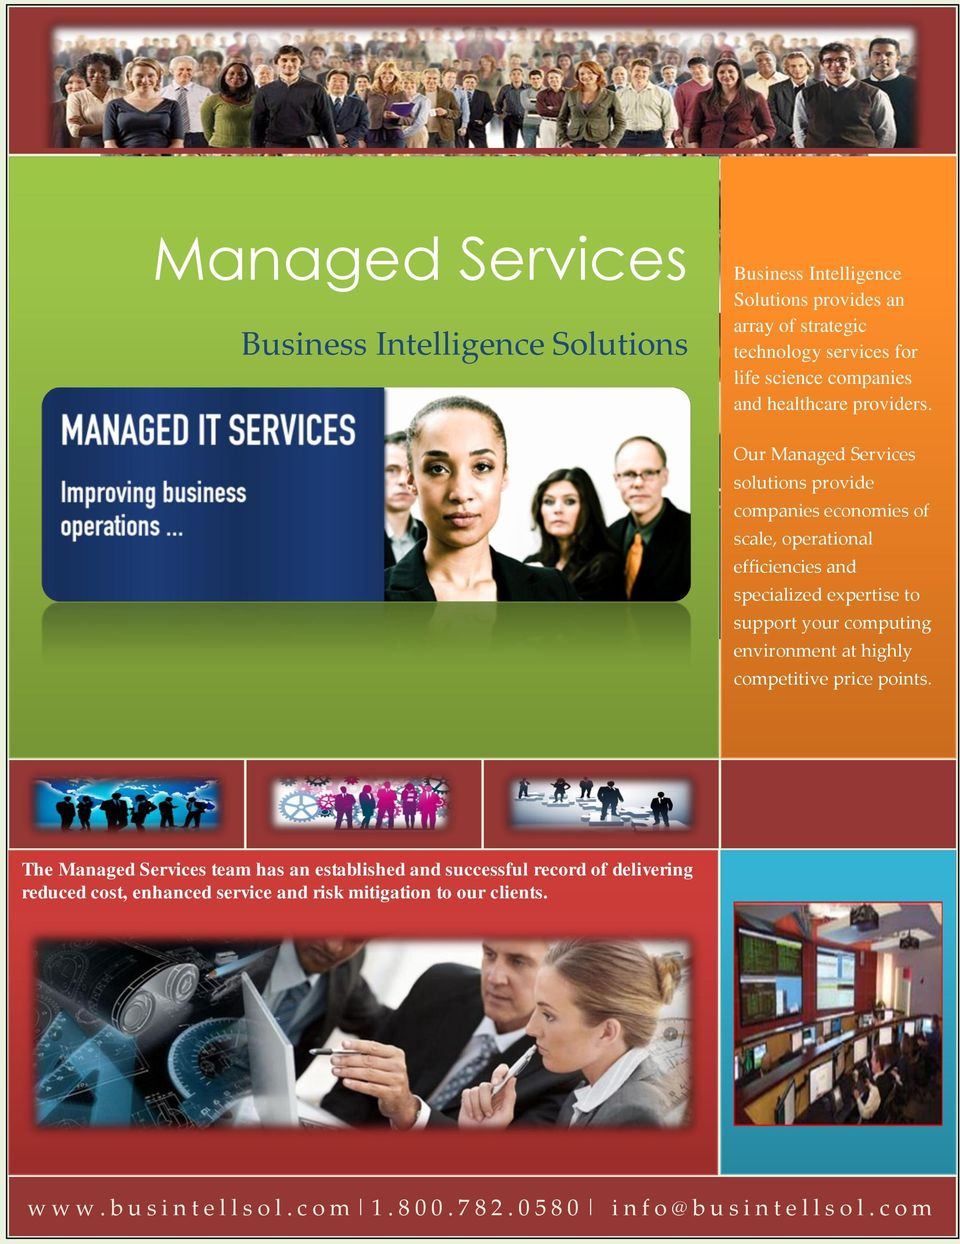 Our Managed Services solutions provide companies economies of scale, operational efficiencies and specialized expertise to support